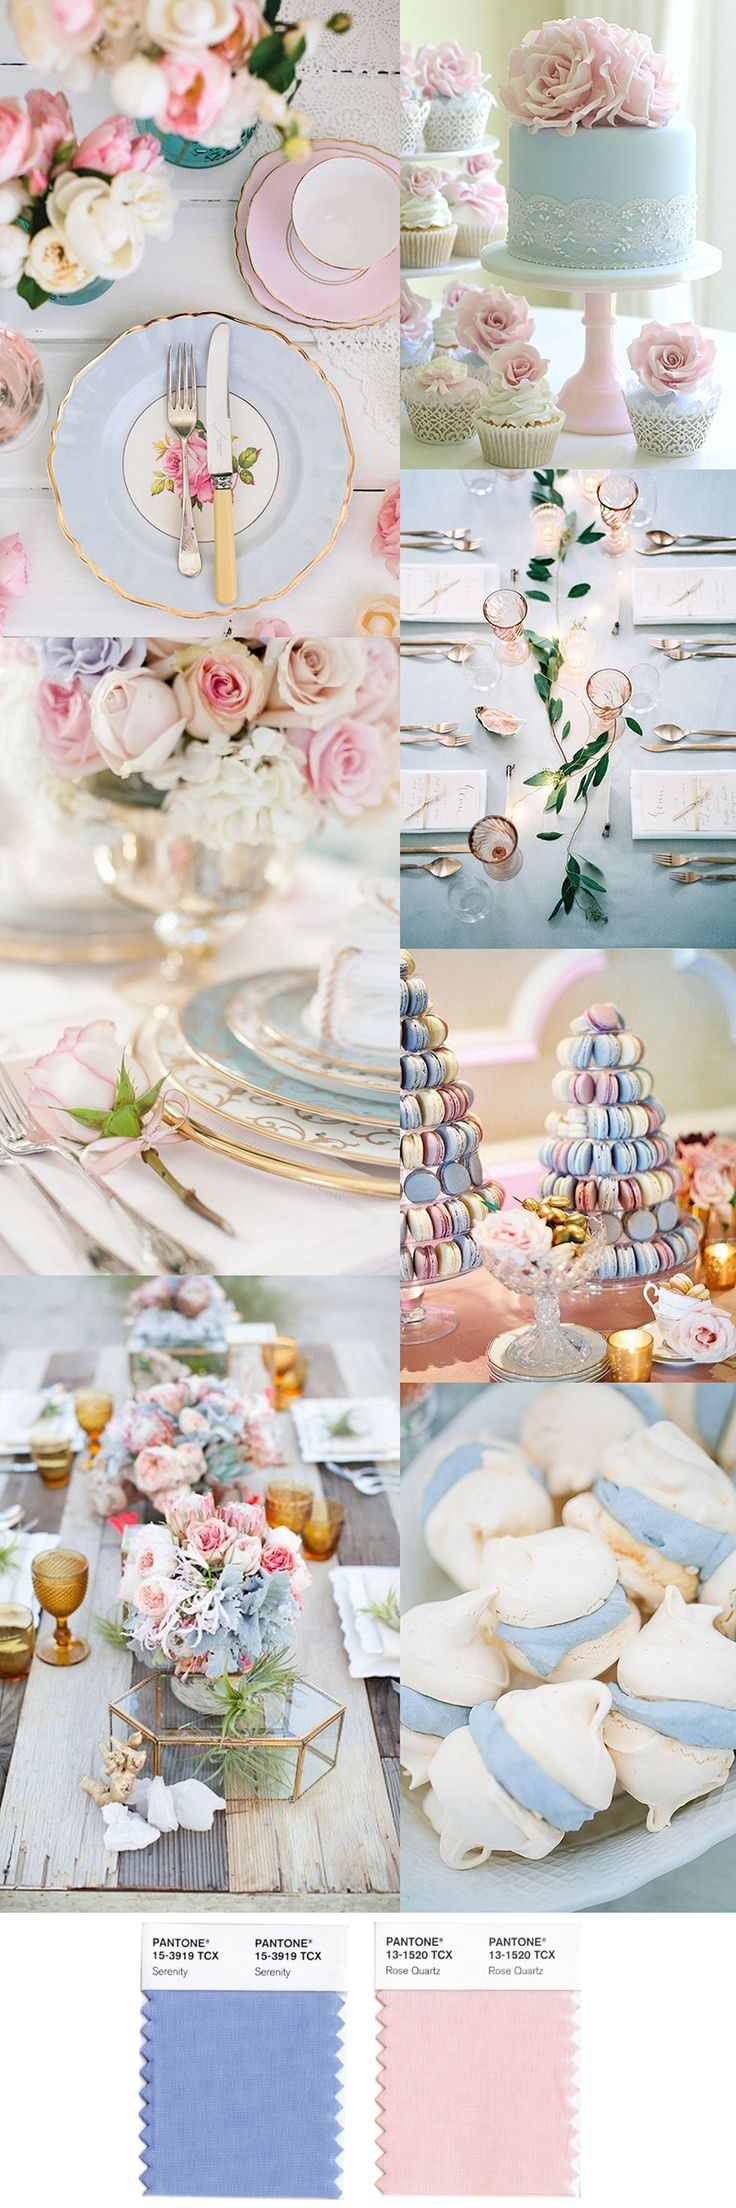 Pantone's Color of the Year 2016, Rose Quartz and Serenity Party Inspiration